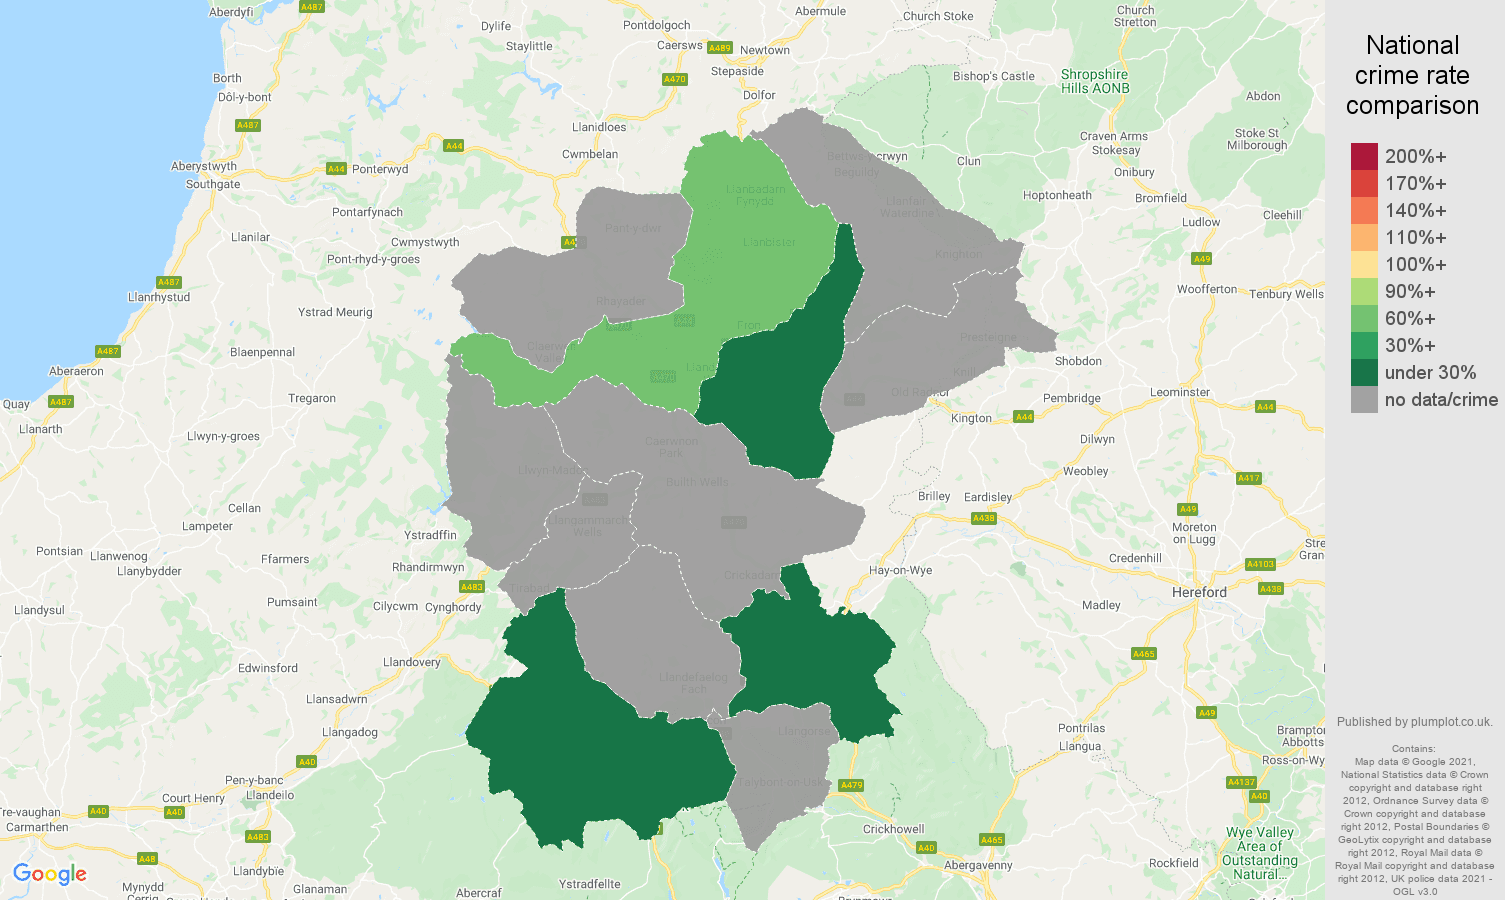 Llandrindod Wells robbery crime rate comparison map